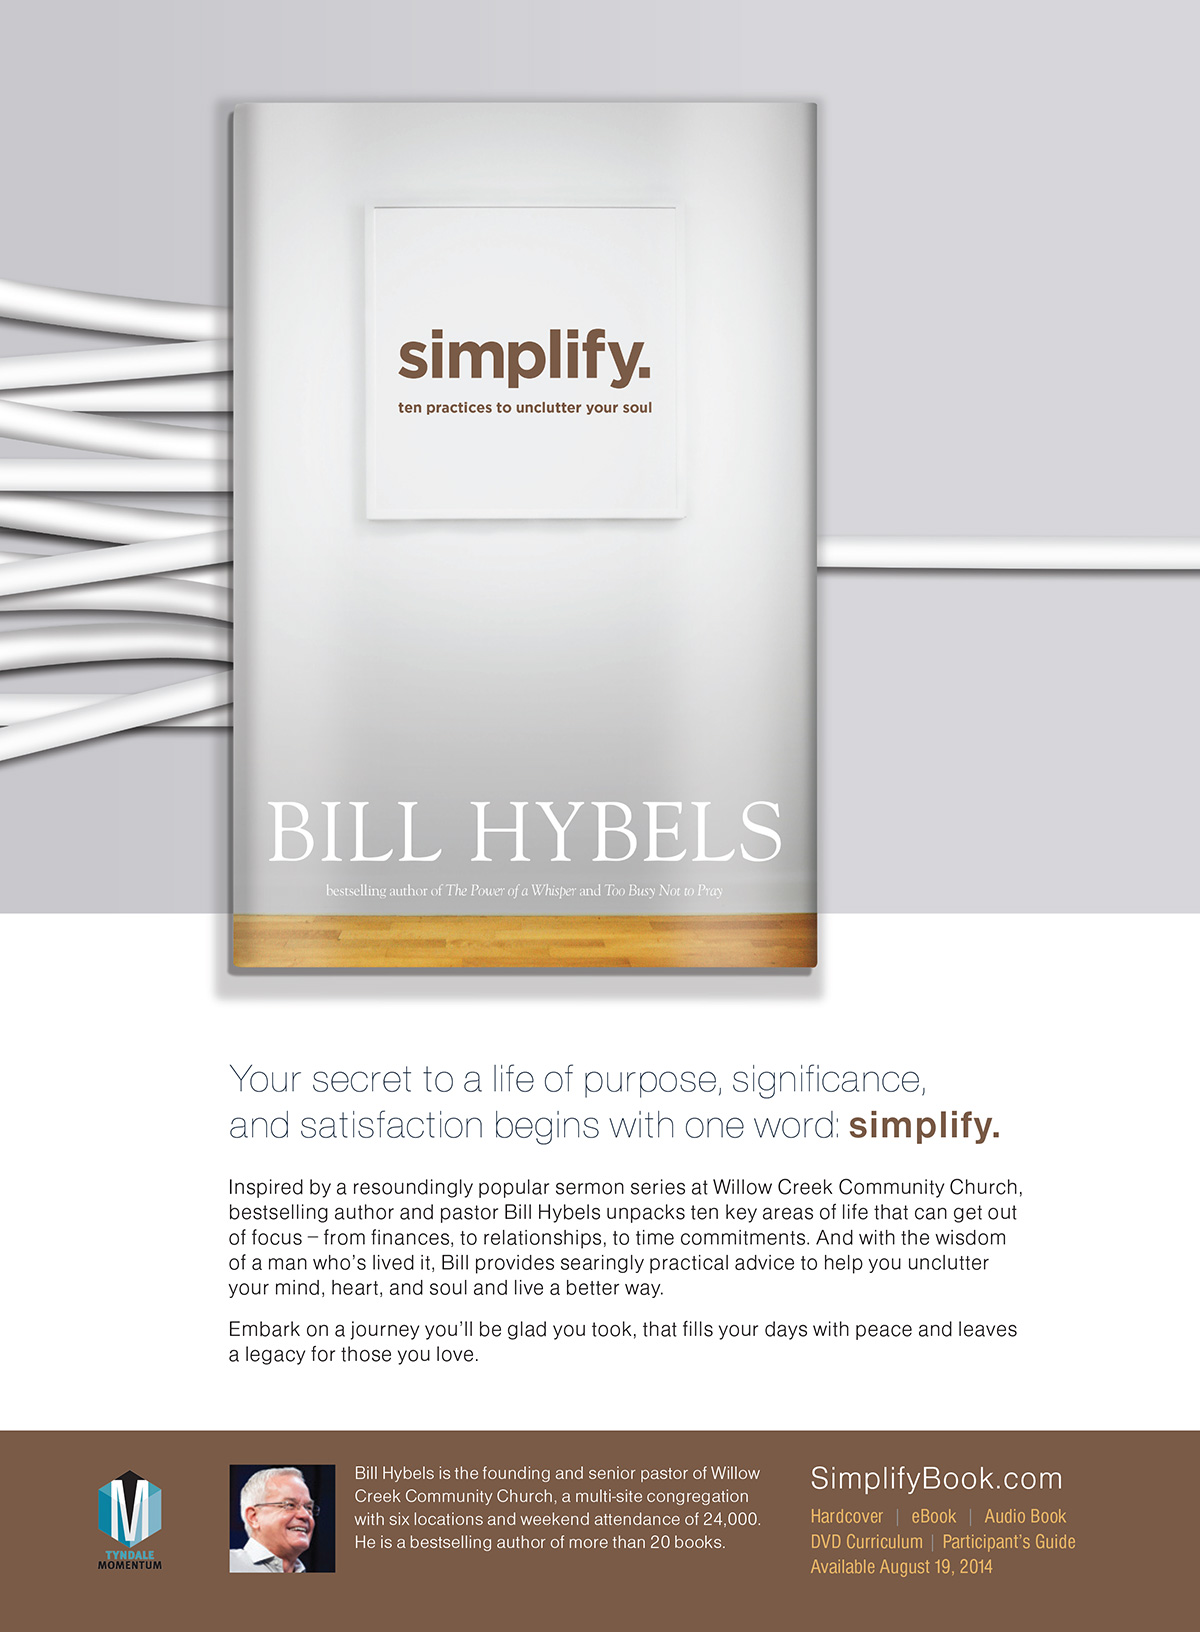 Verve Marketing Group-Print ad for Simplify